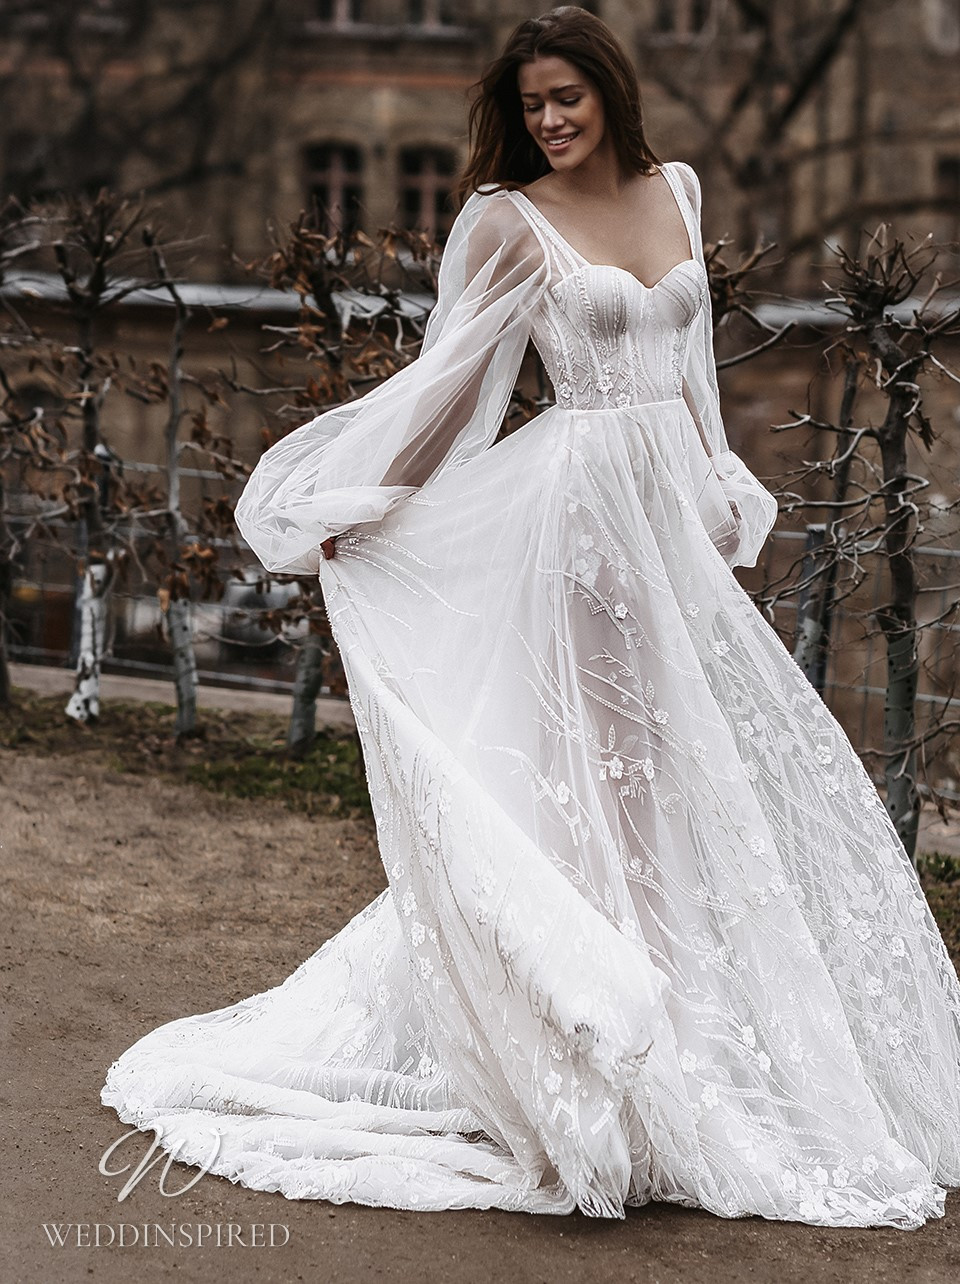 A Galia Lahav 2022 lace and tulle A-line wedding dress with long sleeves